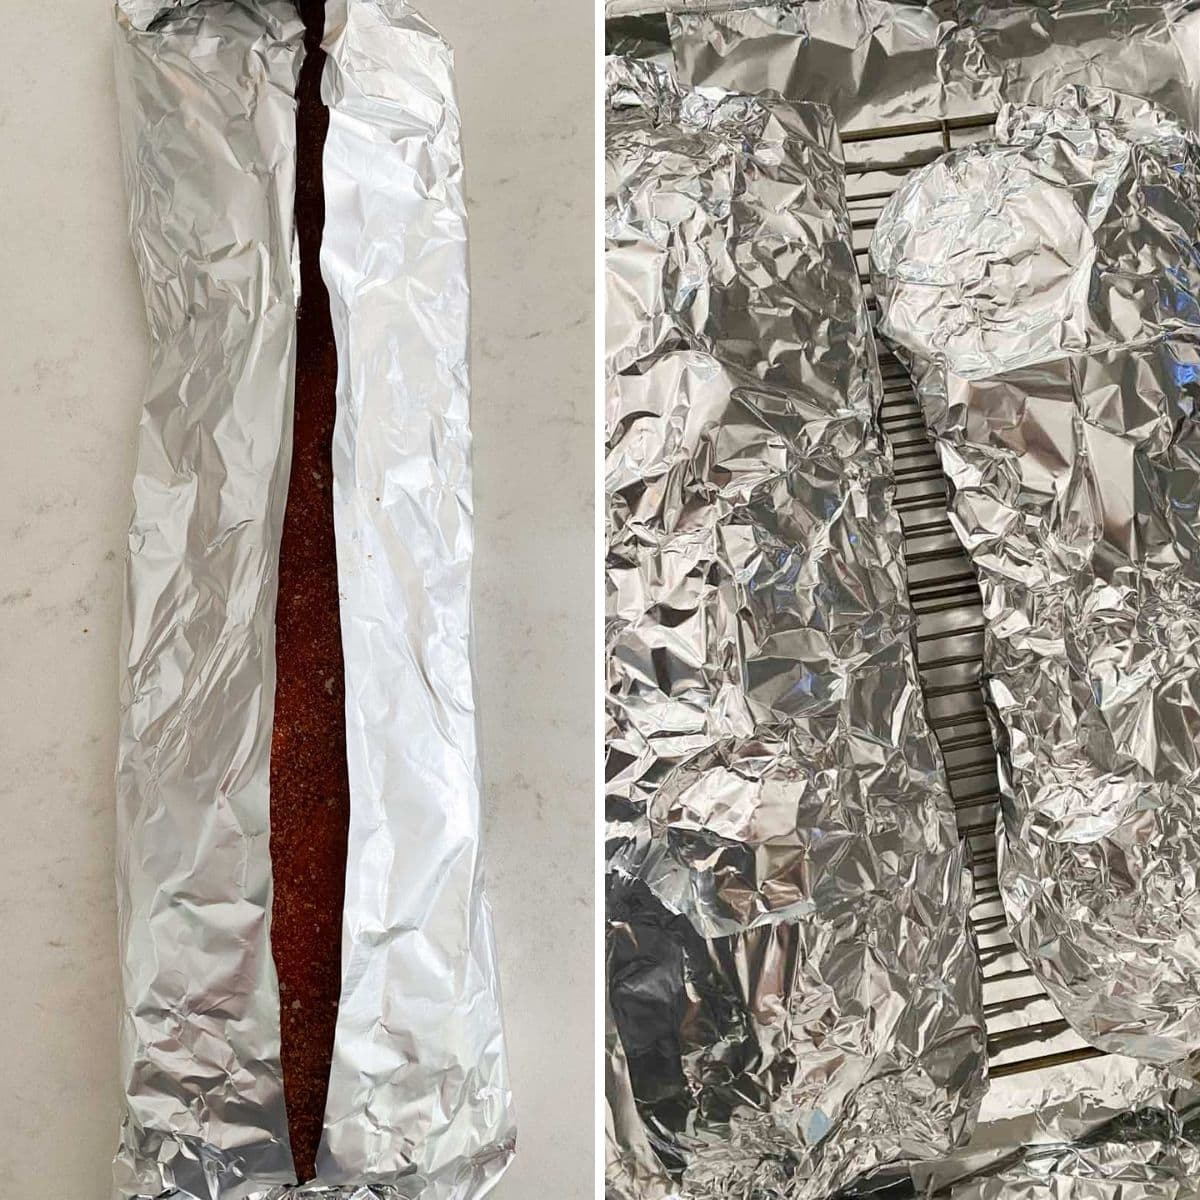 Folding foil around two racks of ribs and placing them on top of a baking sheet